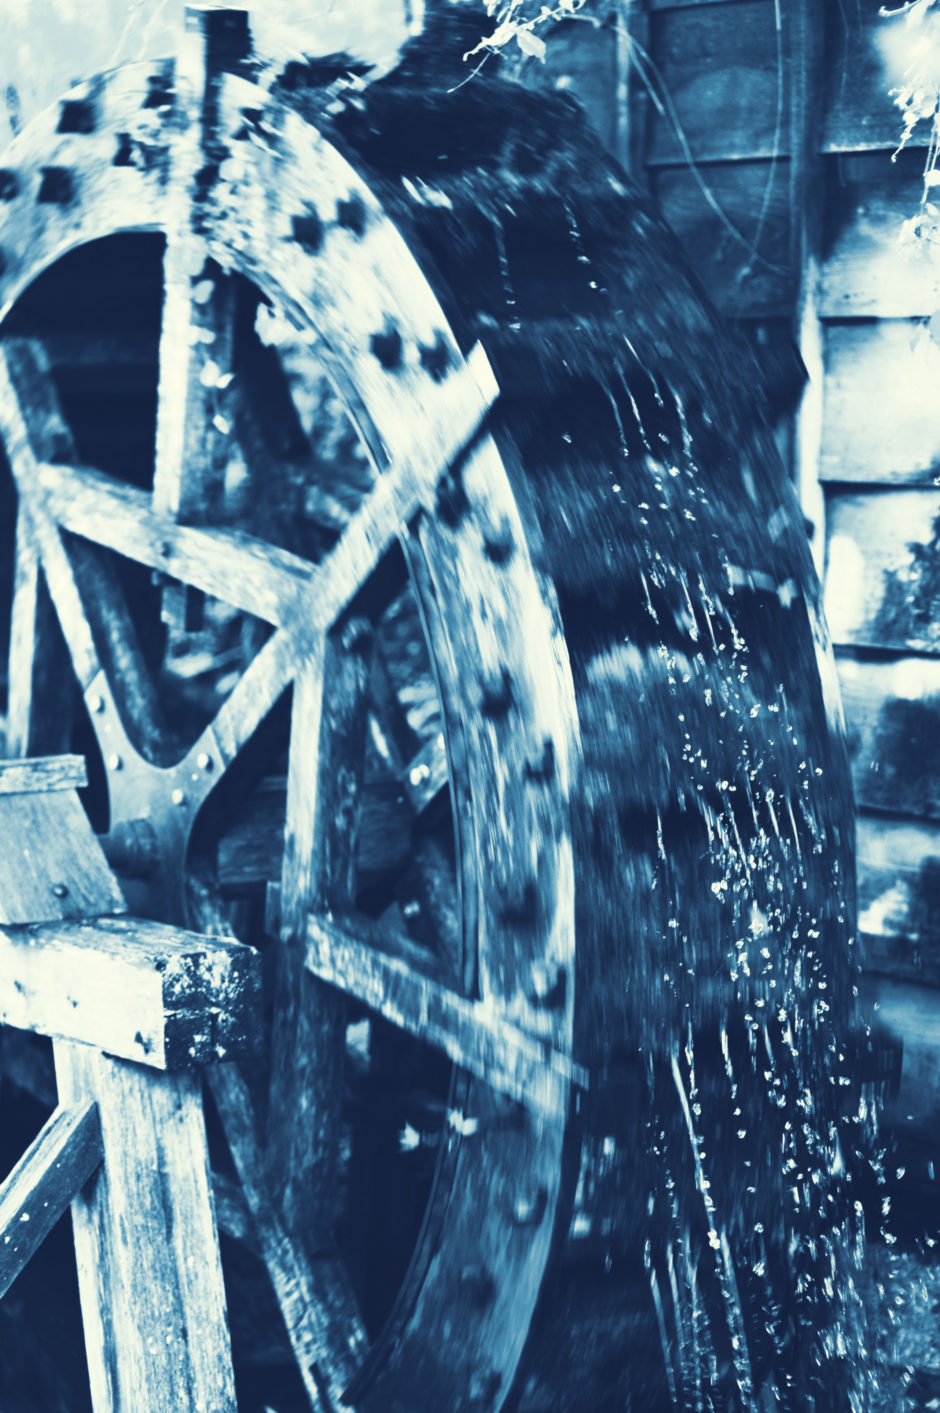 Photo of old waterwheel turning in Shirakawago, Japan